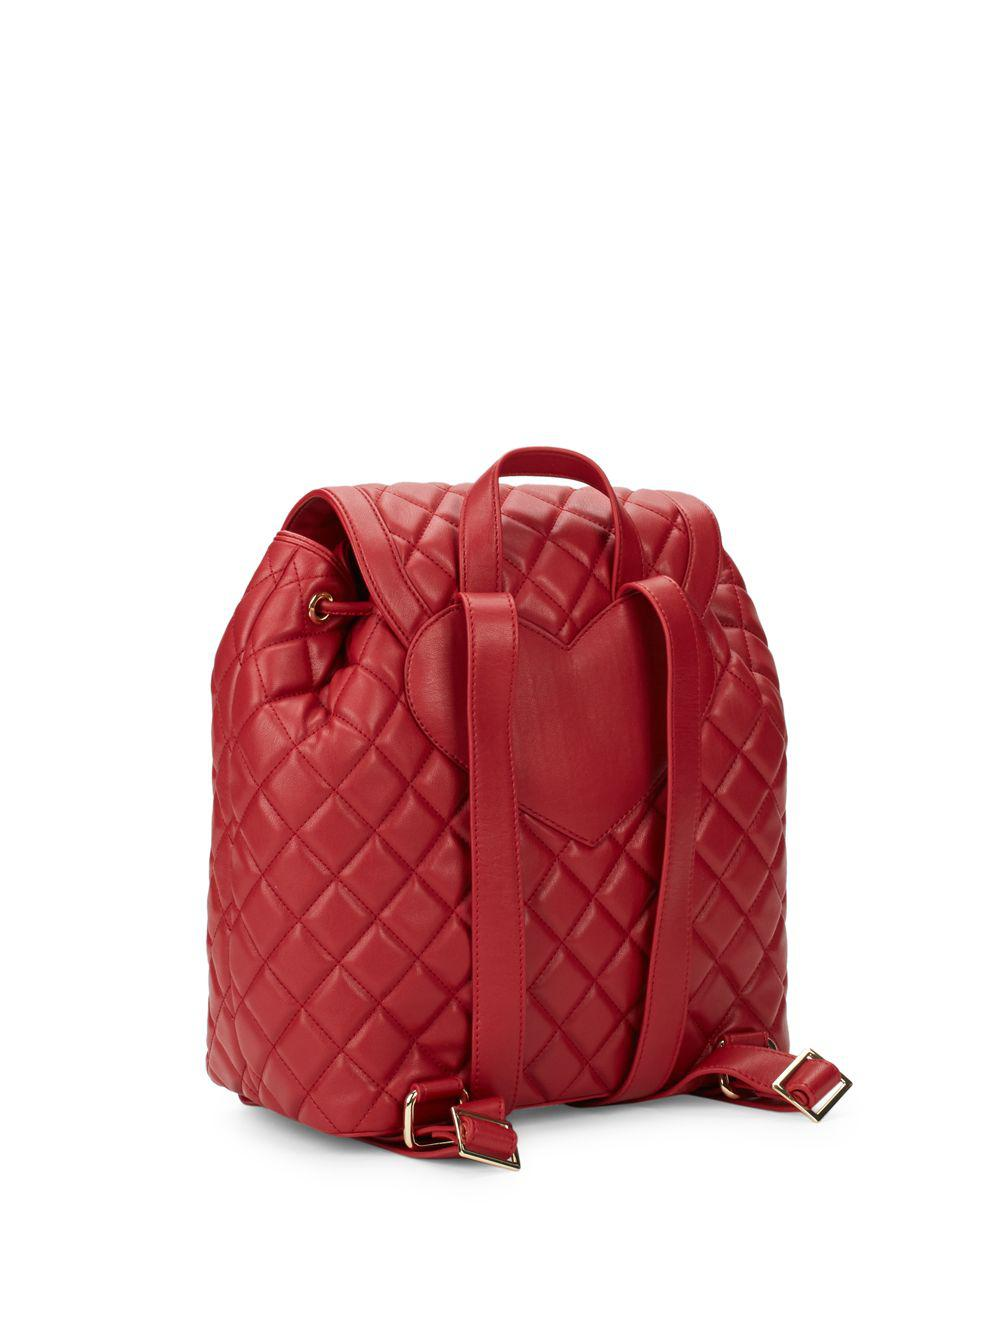 3544f6cc0101 Lyst - Love Moschino Quilted Drawstring Backpack in Red